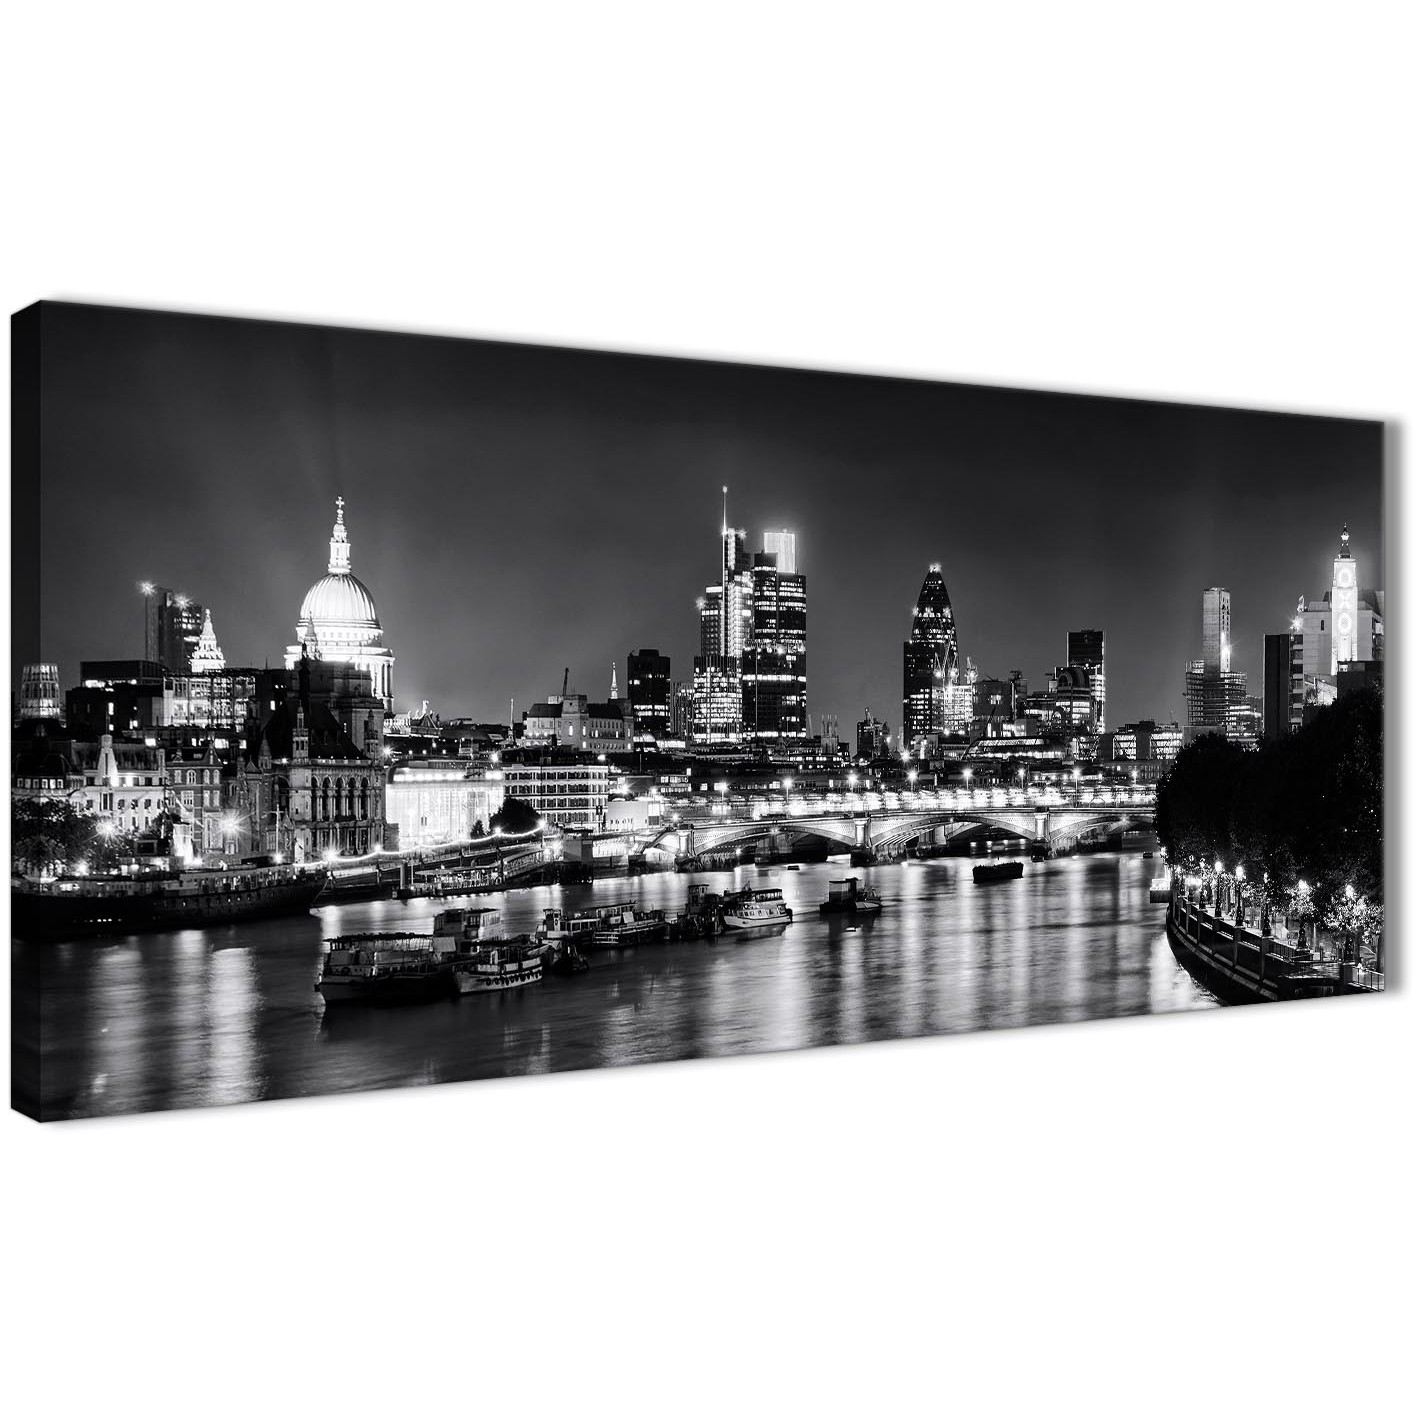 River Thames Skyline Of London Canvas Art Pictures – Landscape Inside Newest Canvas Wall Art Of London (View 13 of 15)